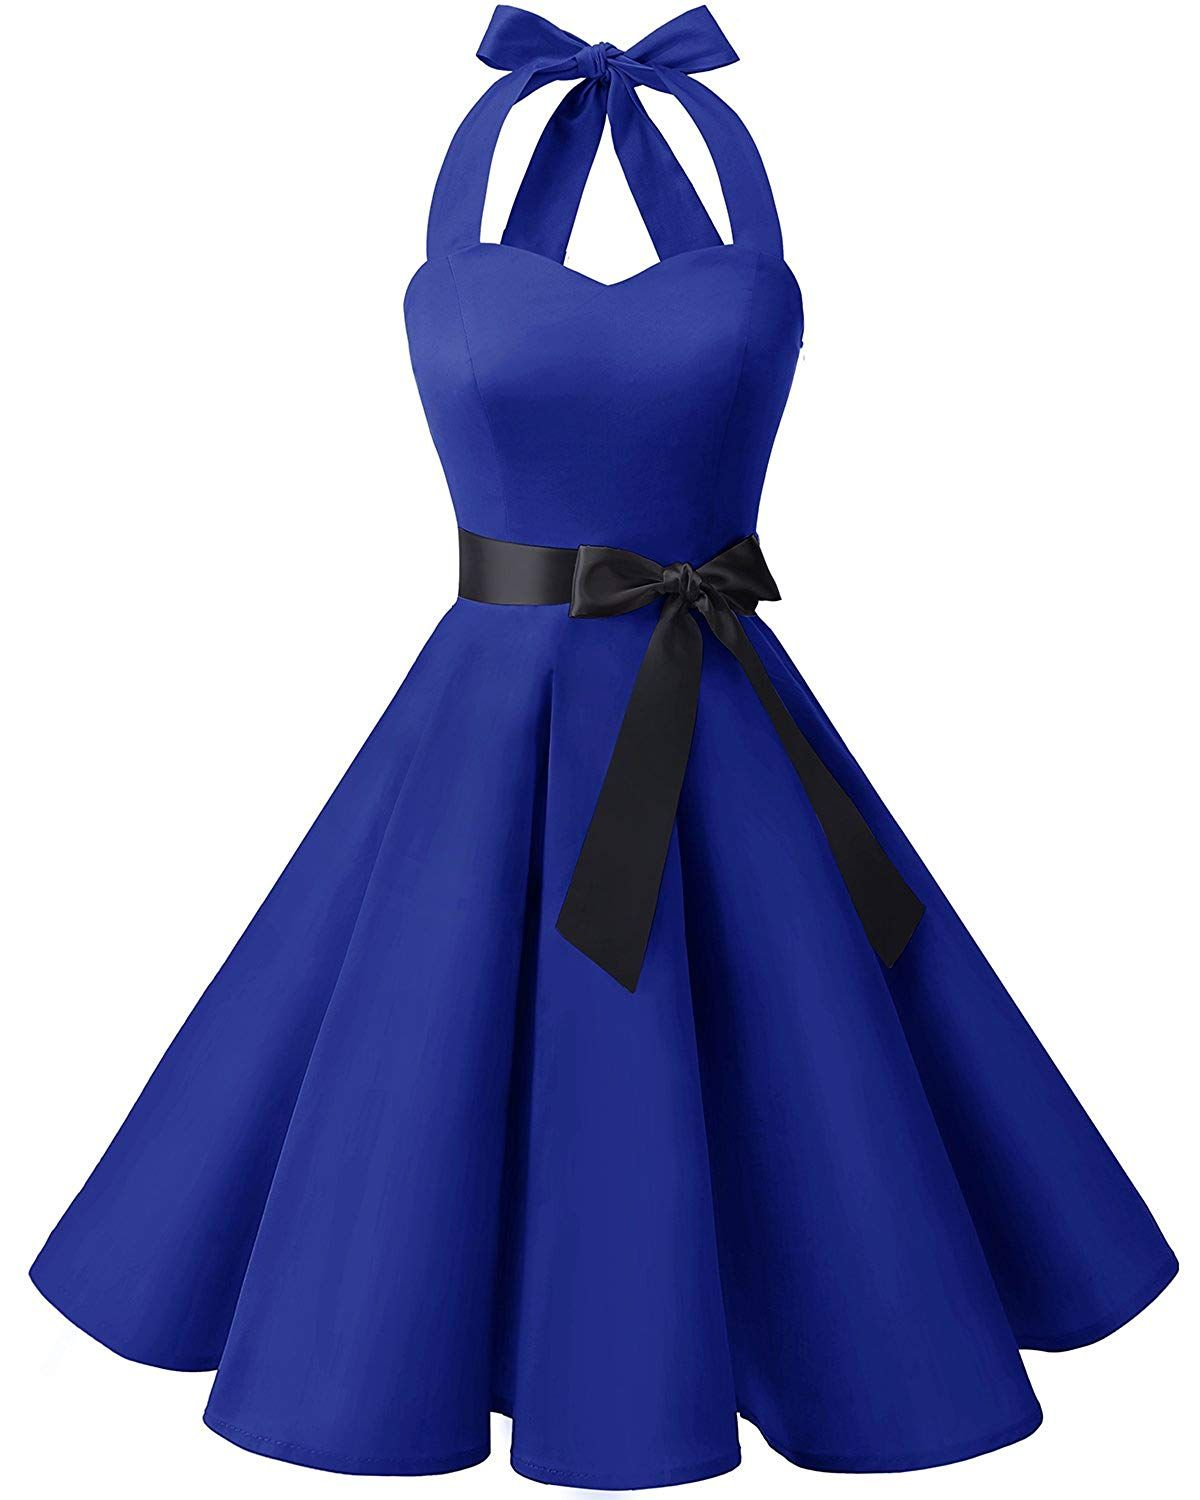 Amazon.com  Bridesmay Women 50 s Vintage Rockabilly Halter Swing Cocktail  Party Dress Royal Blue 3XL  Clothing 2b47fc033175